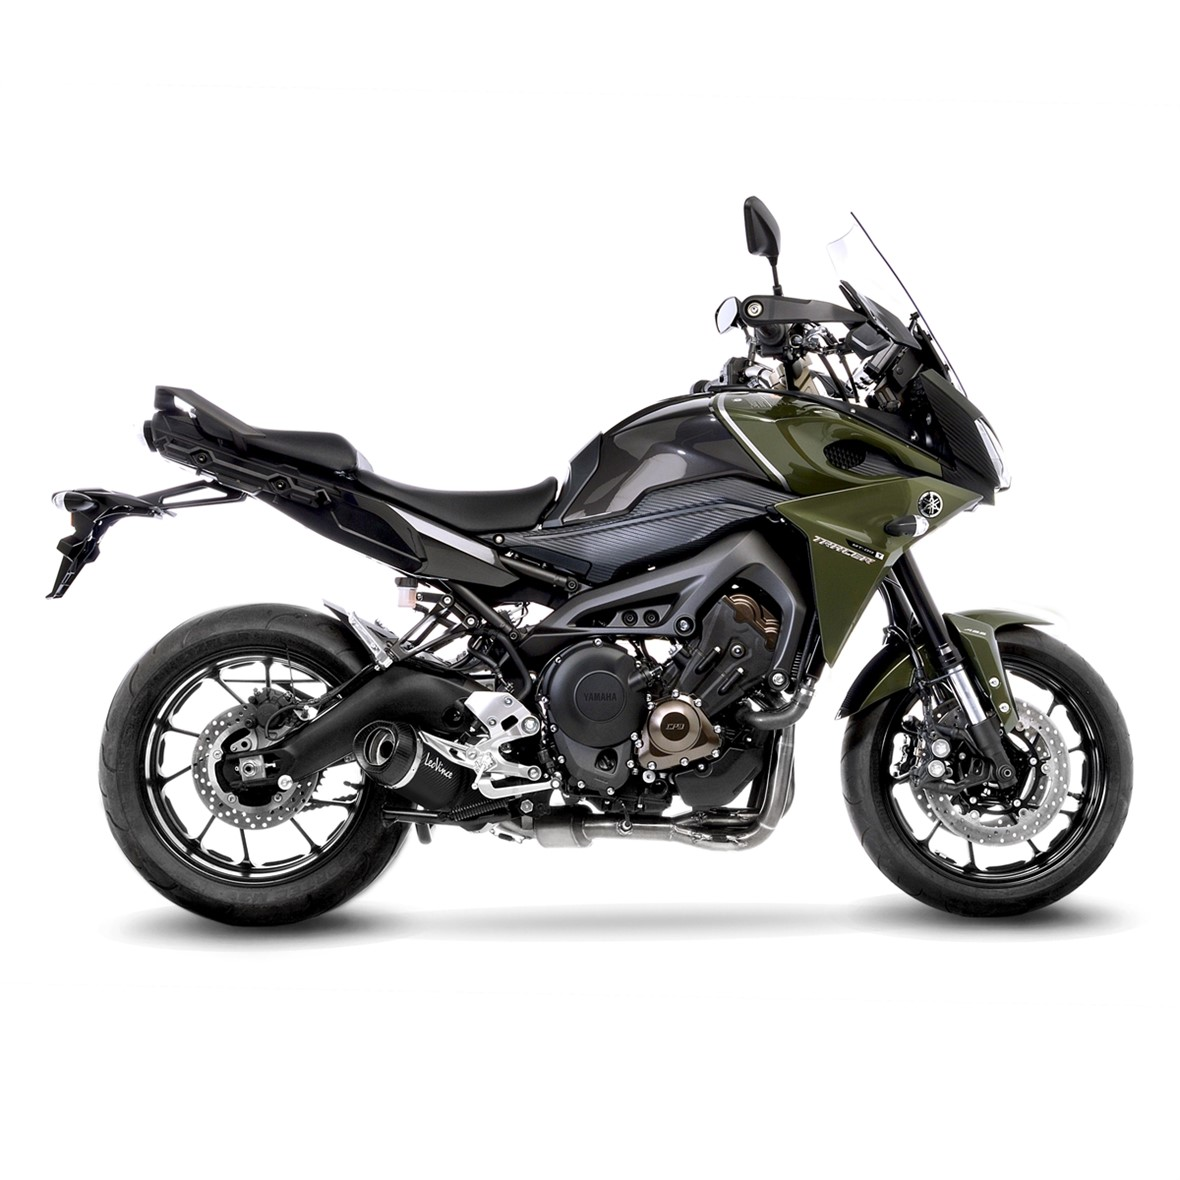 yamaha mt 09 abs sp tracer gt xsr 900 lv one evo race exhaust system. Black Bedroom Furniture Sets. Home Design Ideas